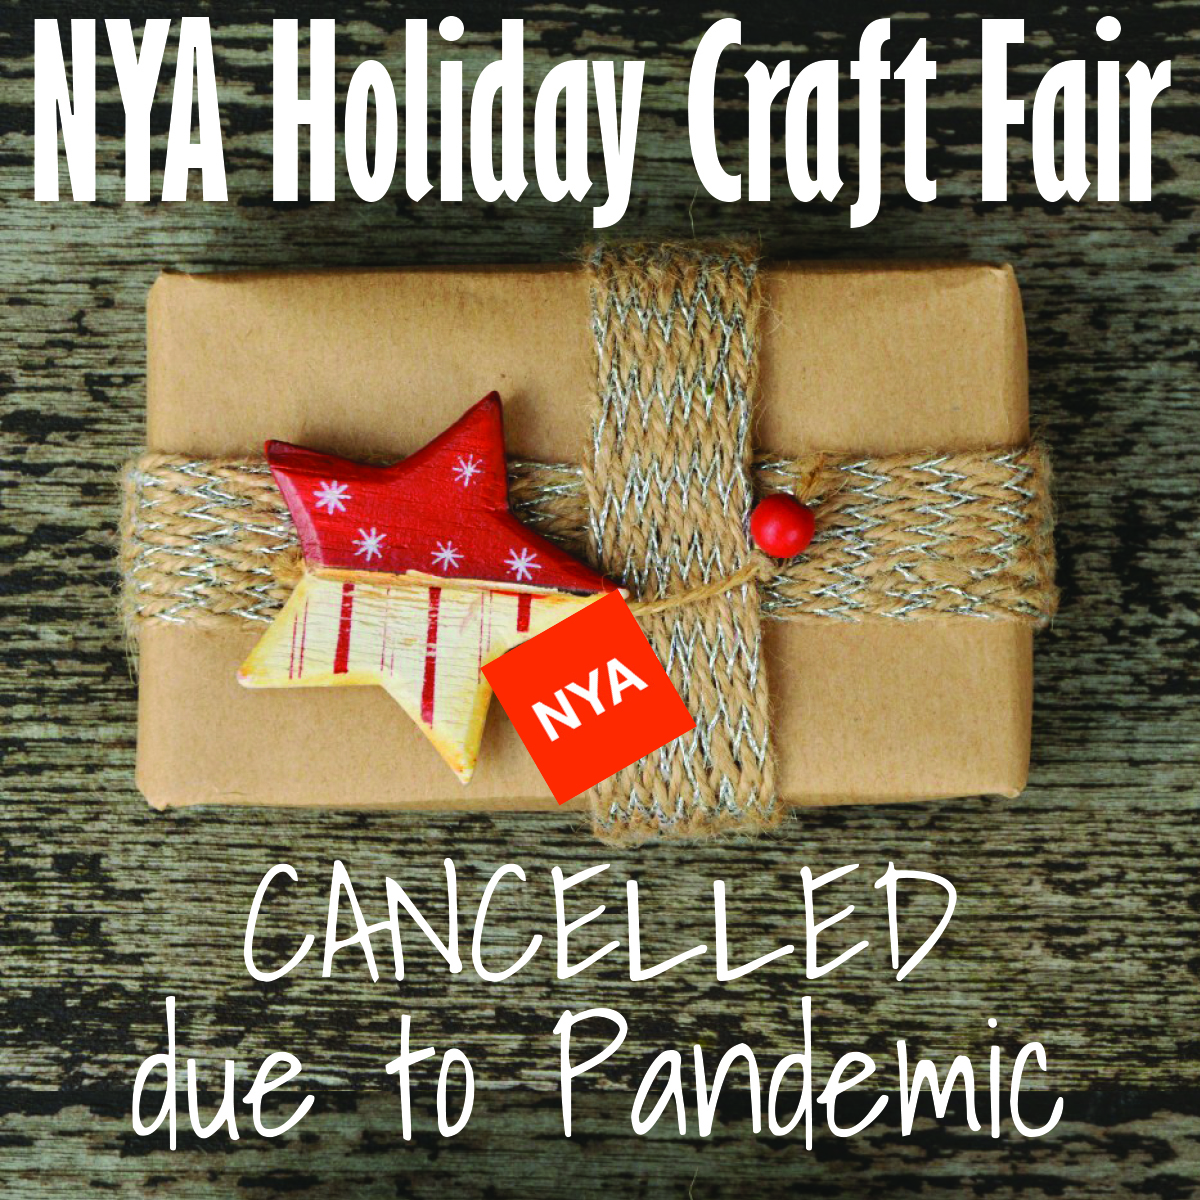 NYA Holiday Craft Fair cancellation button 2020